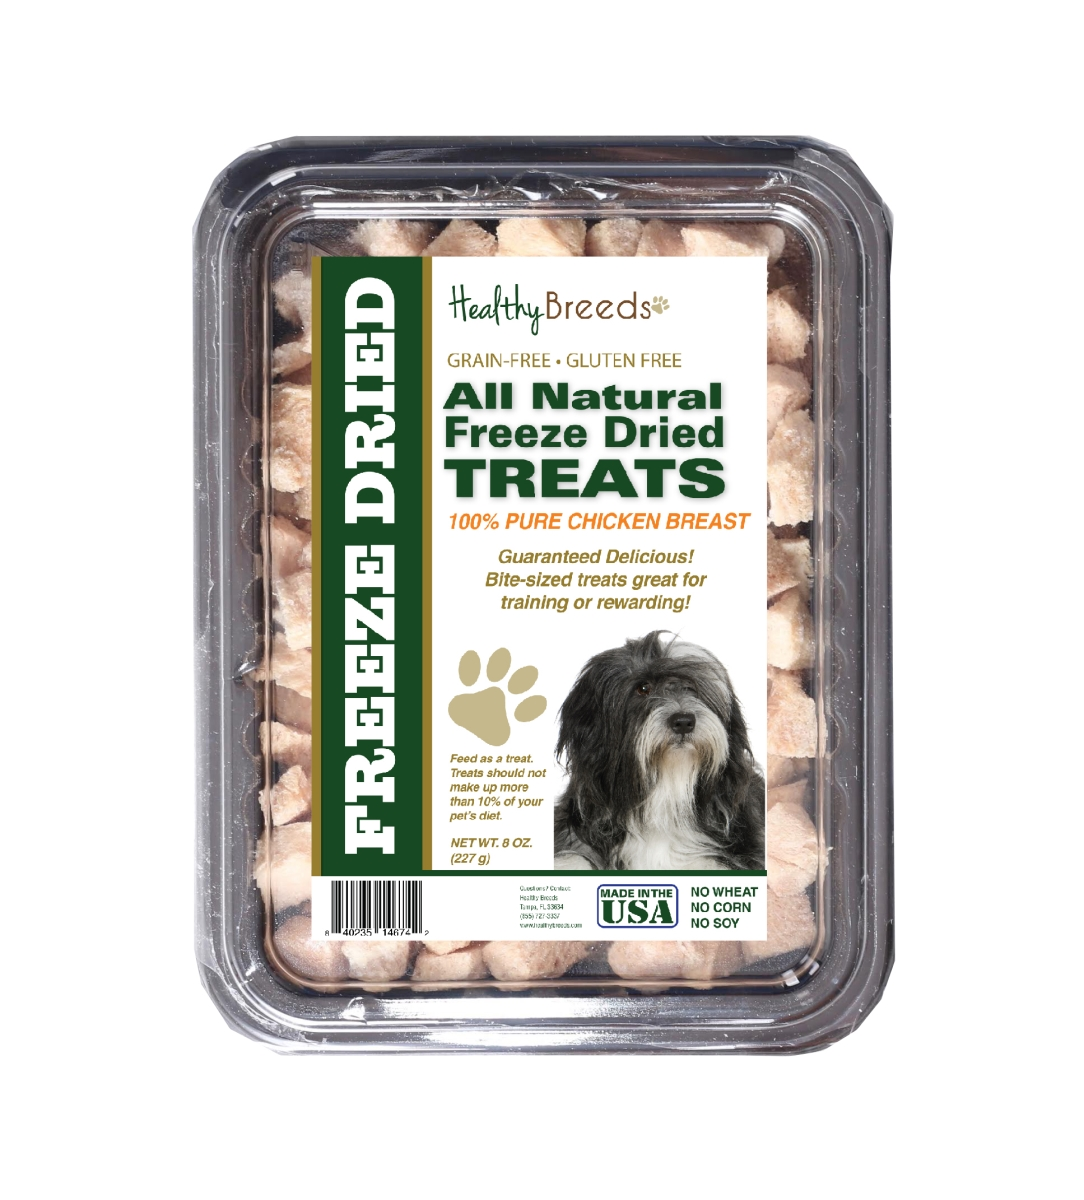 Healthy Breeds 840235146742 8 oz Lhasa Apso All Natural Freeze Dried Treats Chicken Breast